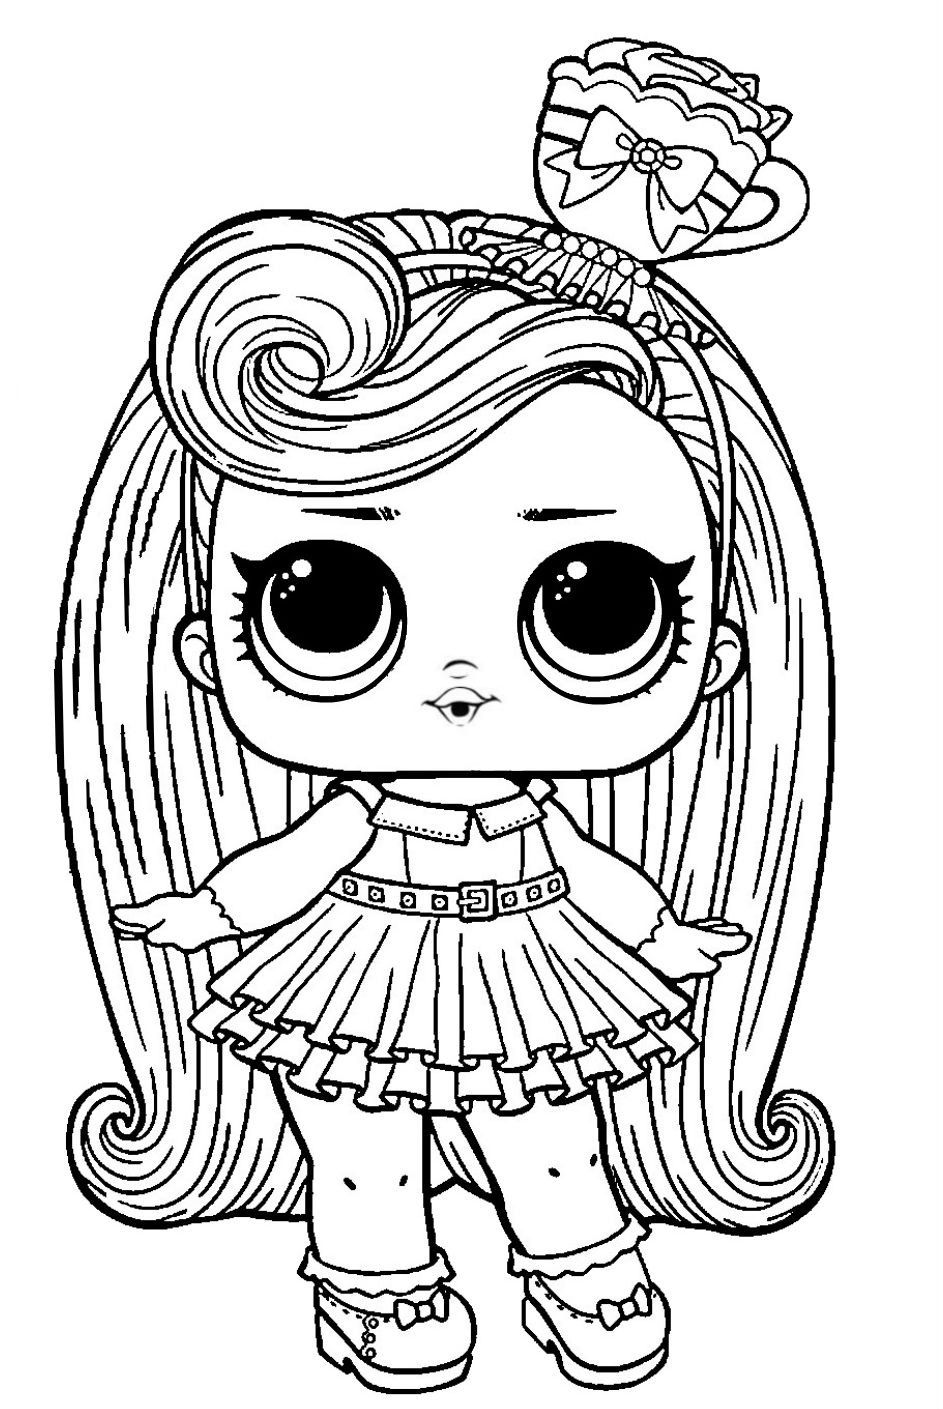 Lol Surprise Hairvibes Coloring Darling Folhas Para Colorir Desnhos Para Colorir Desenhos Para Criancas Colorir